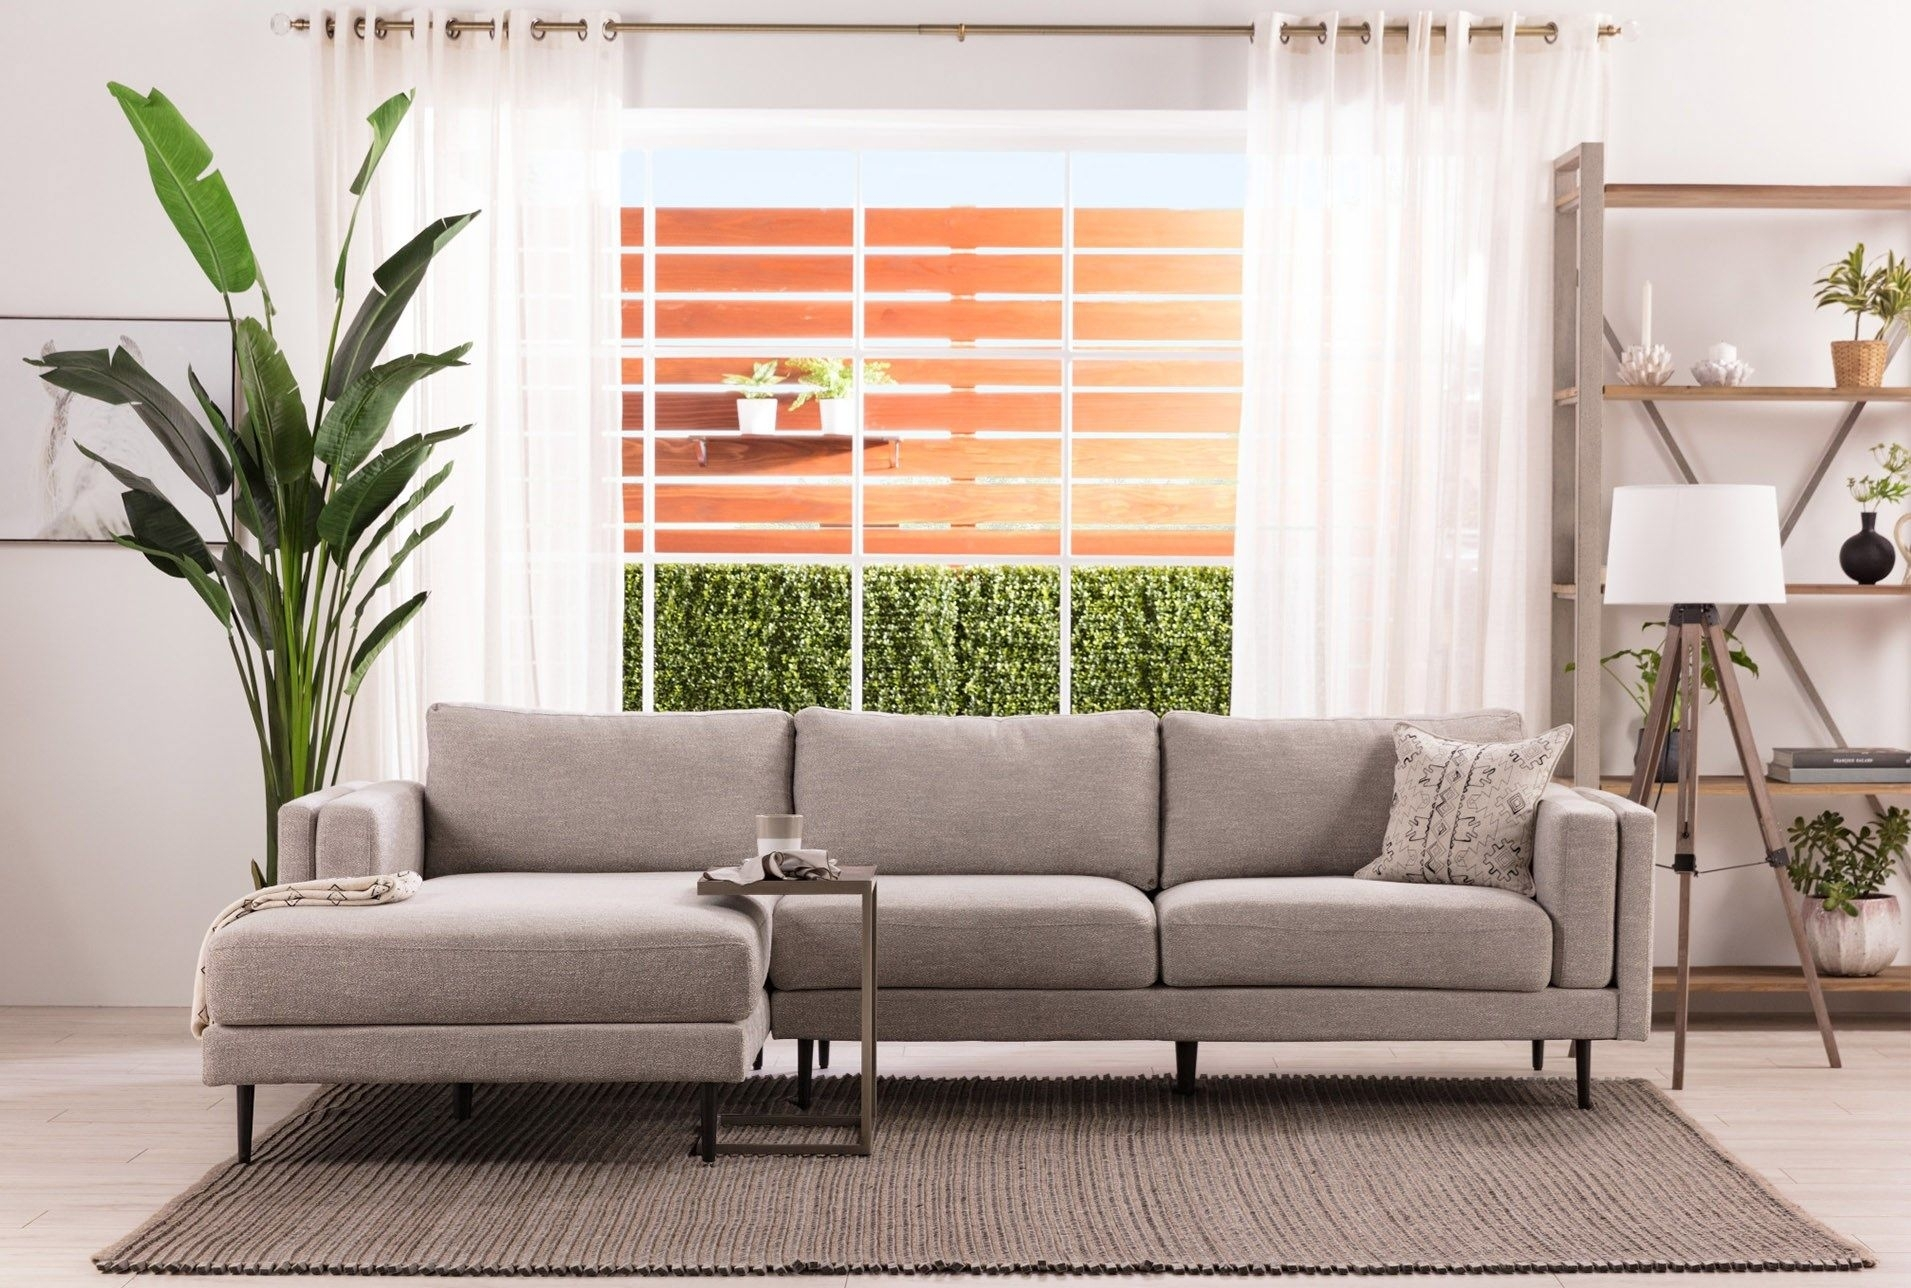 Aquarius Light Grey 2 Piece Sectional W/laf Chaise | Pinterest With Aquarius Dark Grey 2 Piece Sectionals With Laf Chaise (View 4 of 25)